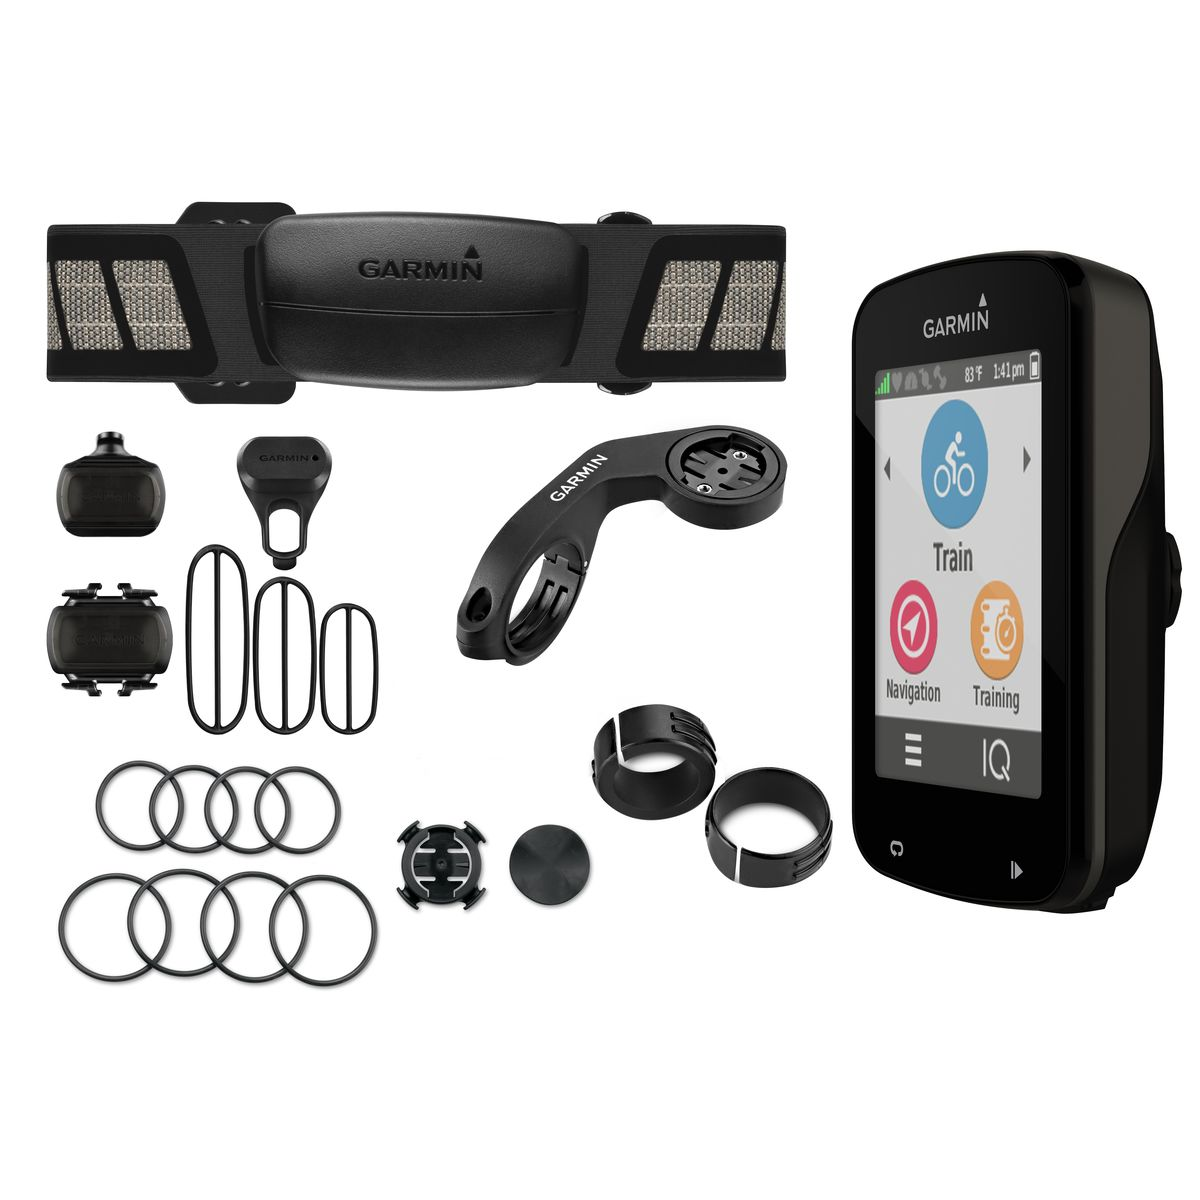 Gps Garmin Edge 820 Bundle  010-01626-11 Autorizada Garmin